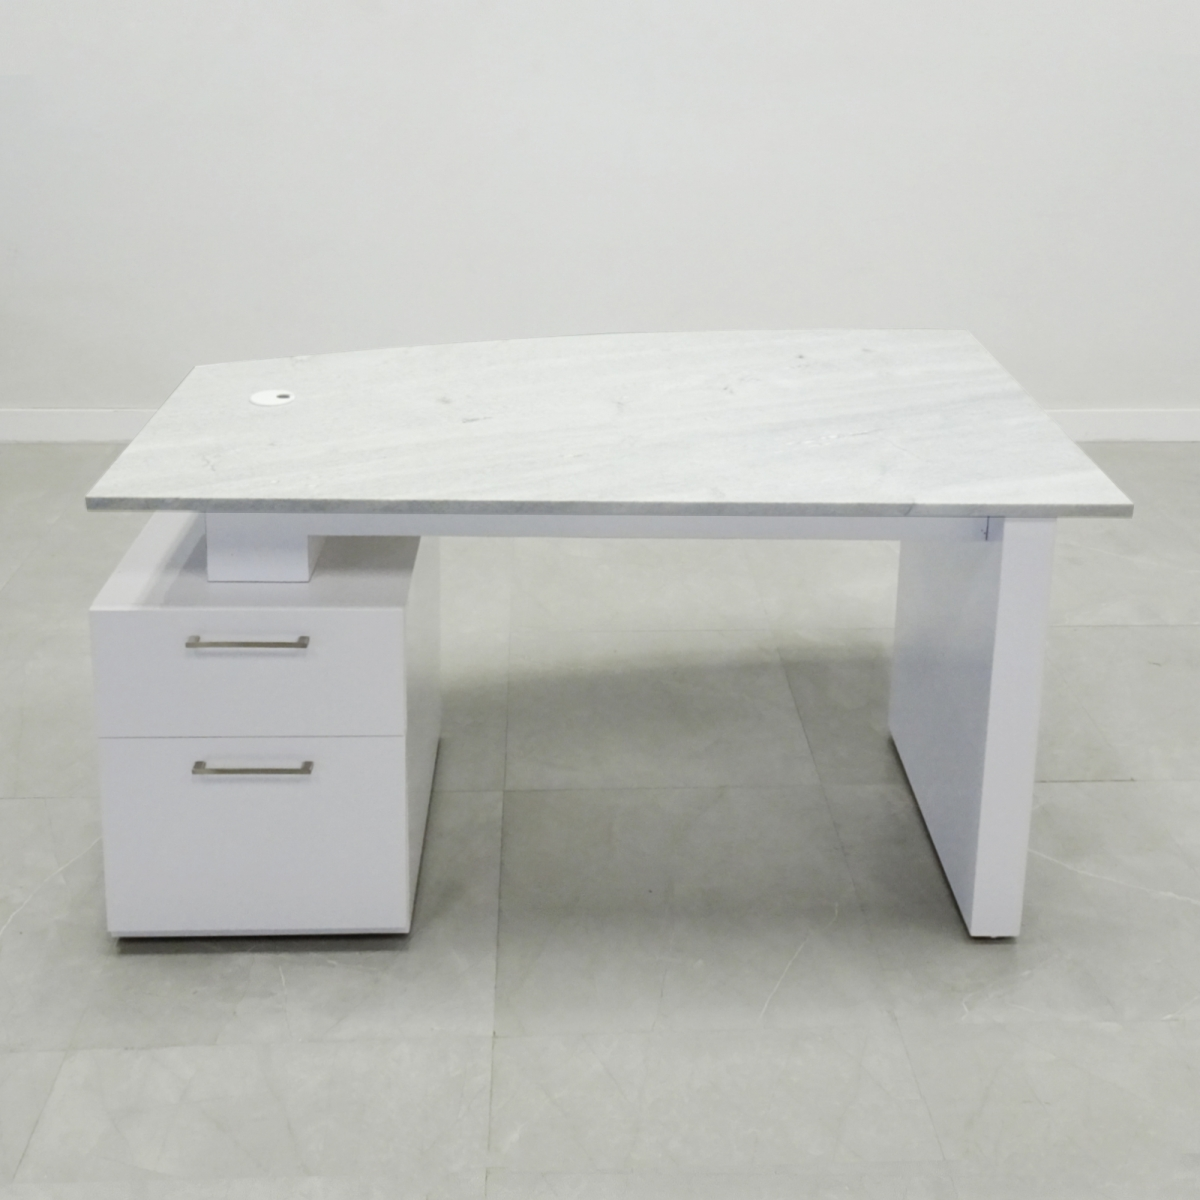 60 In. Aspen white frame with Stone Top Desk